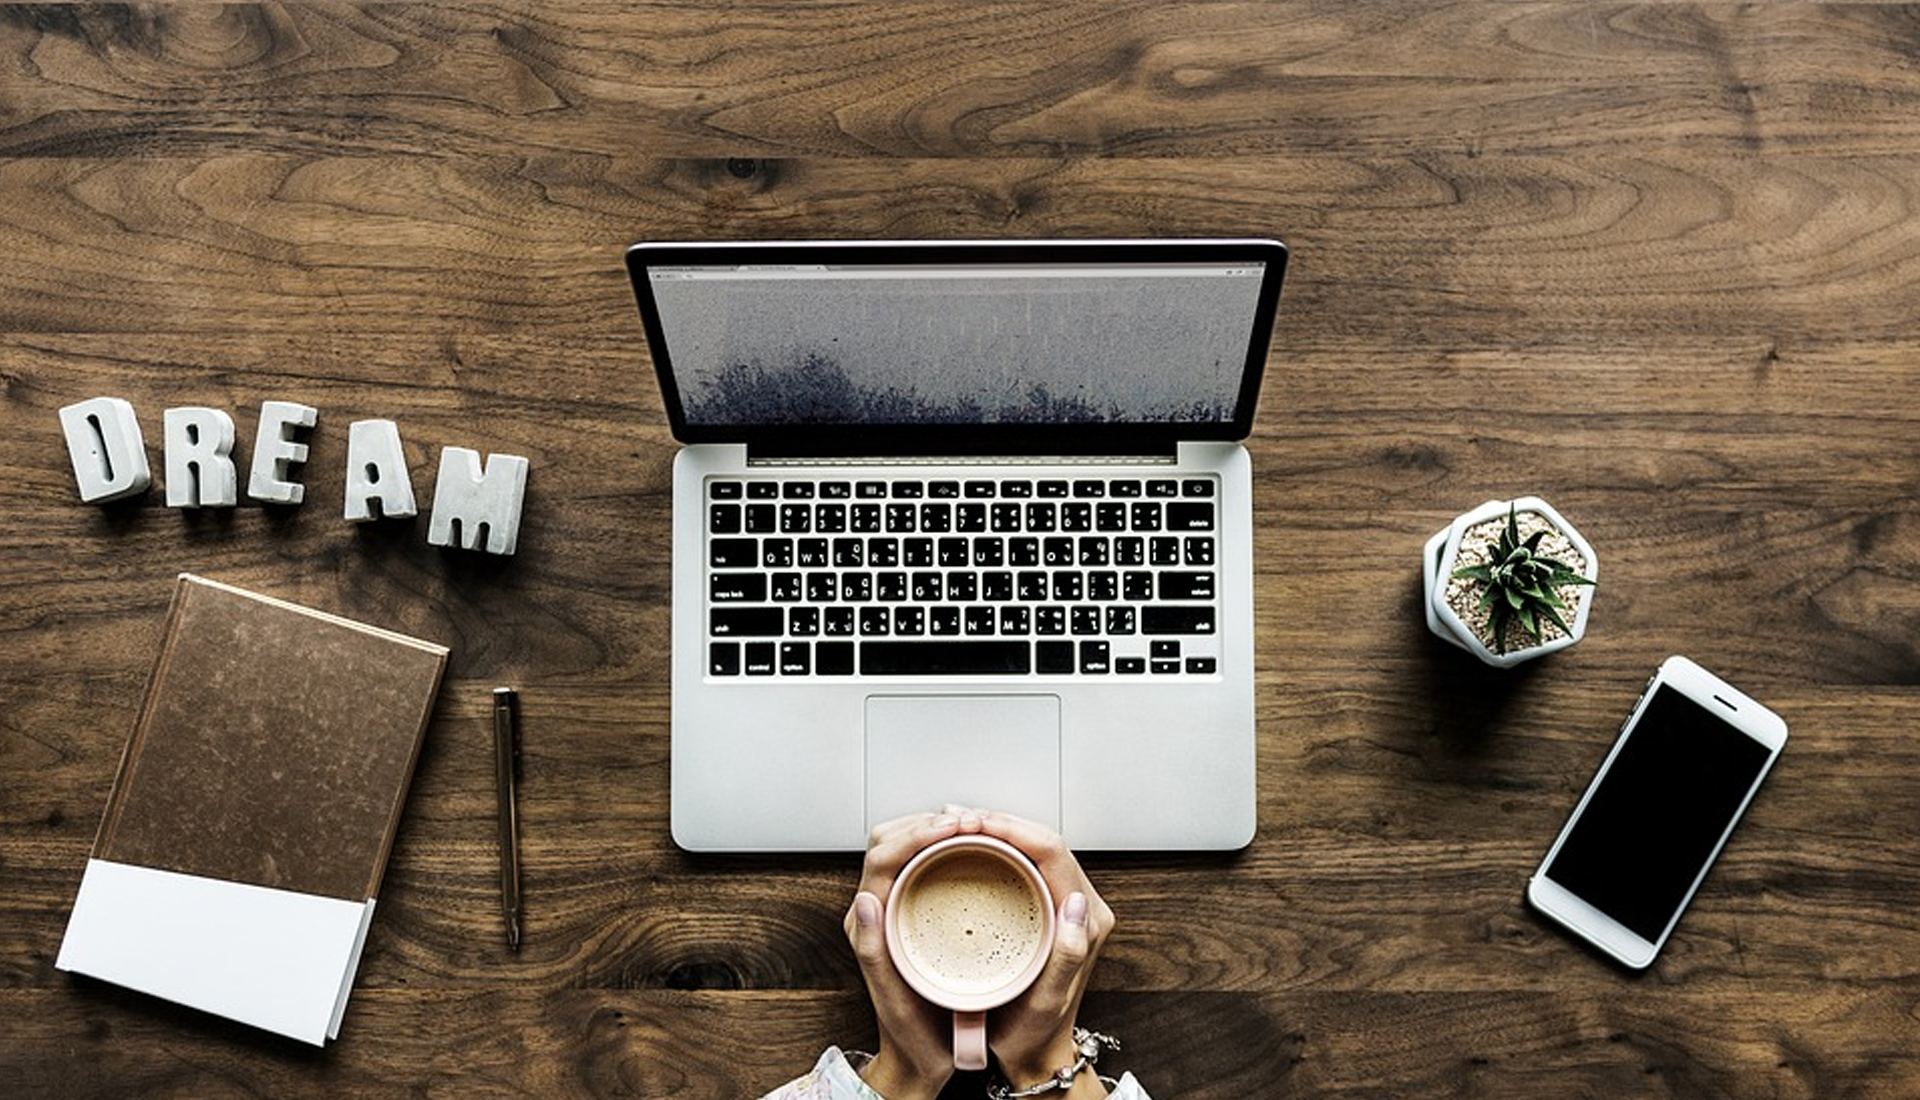 5-awesome-workplace-trends-that-can-work-for-you-in-2018